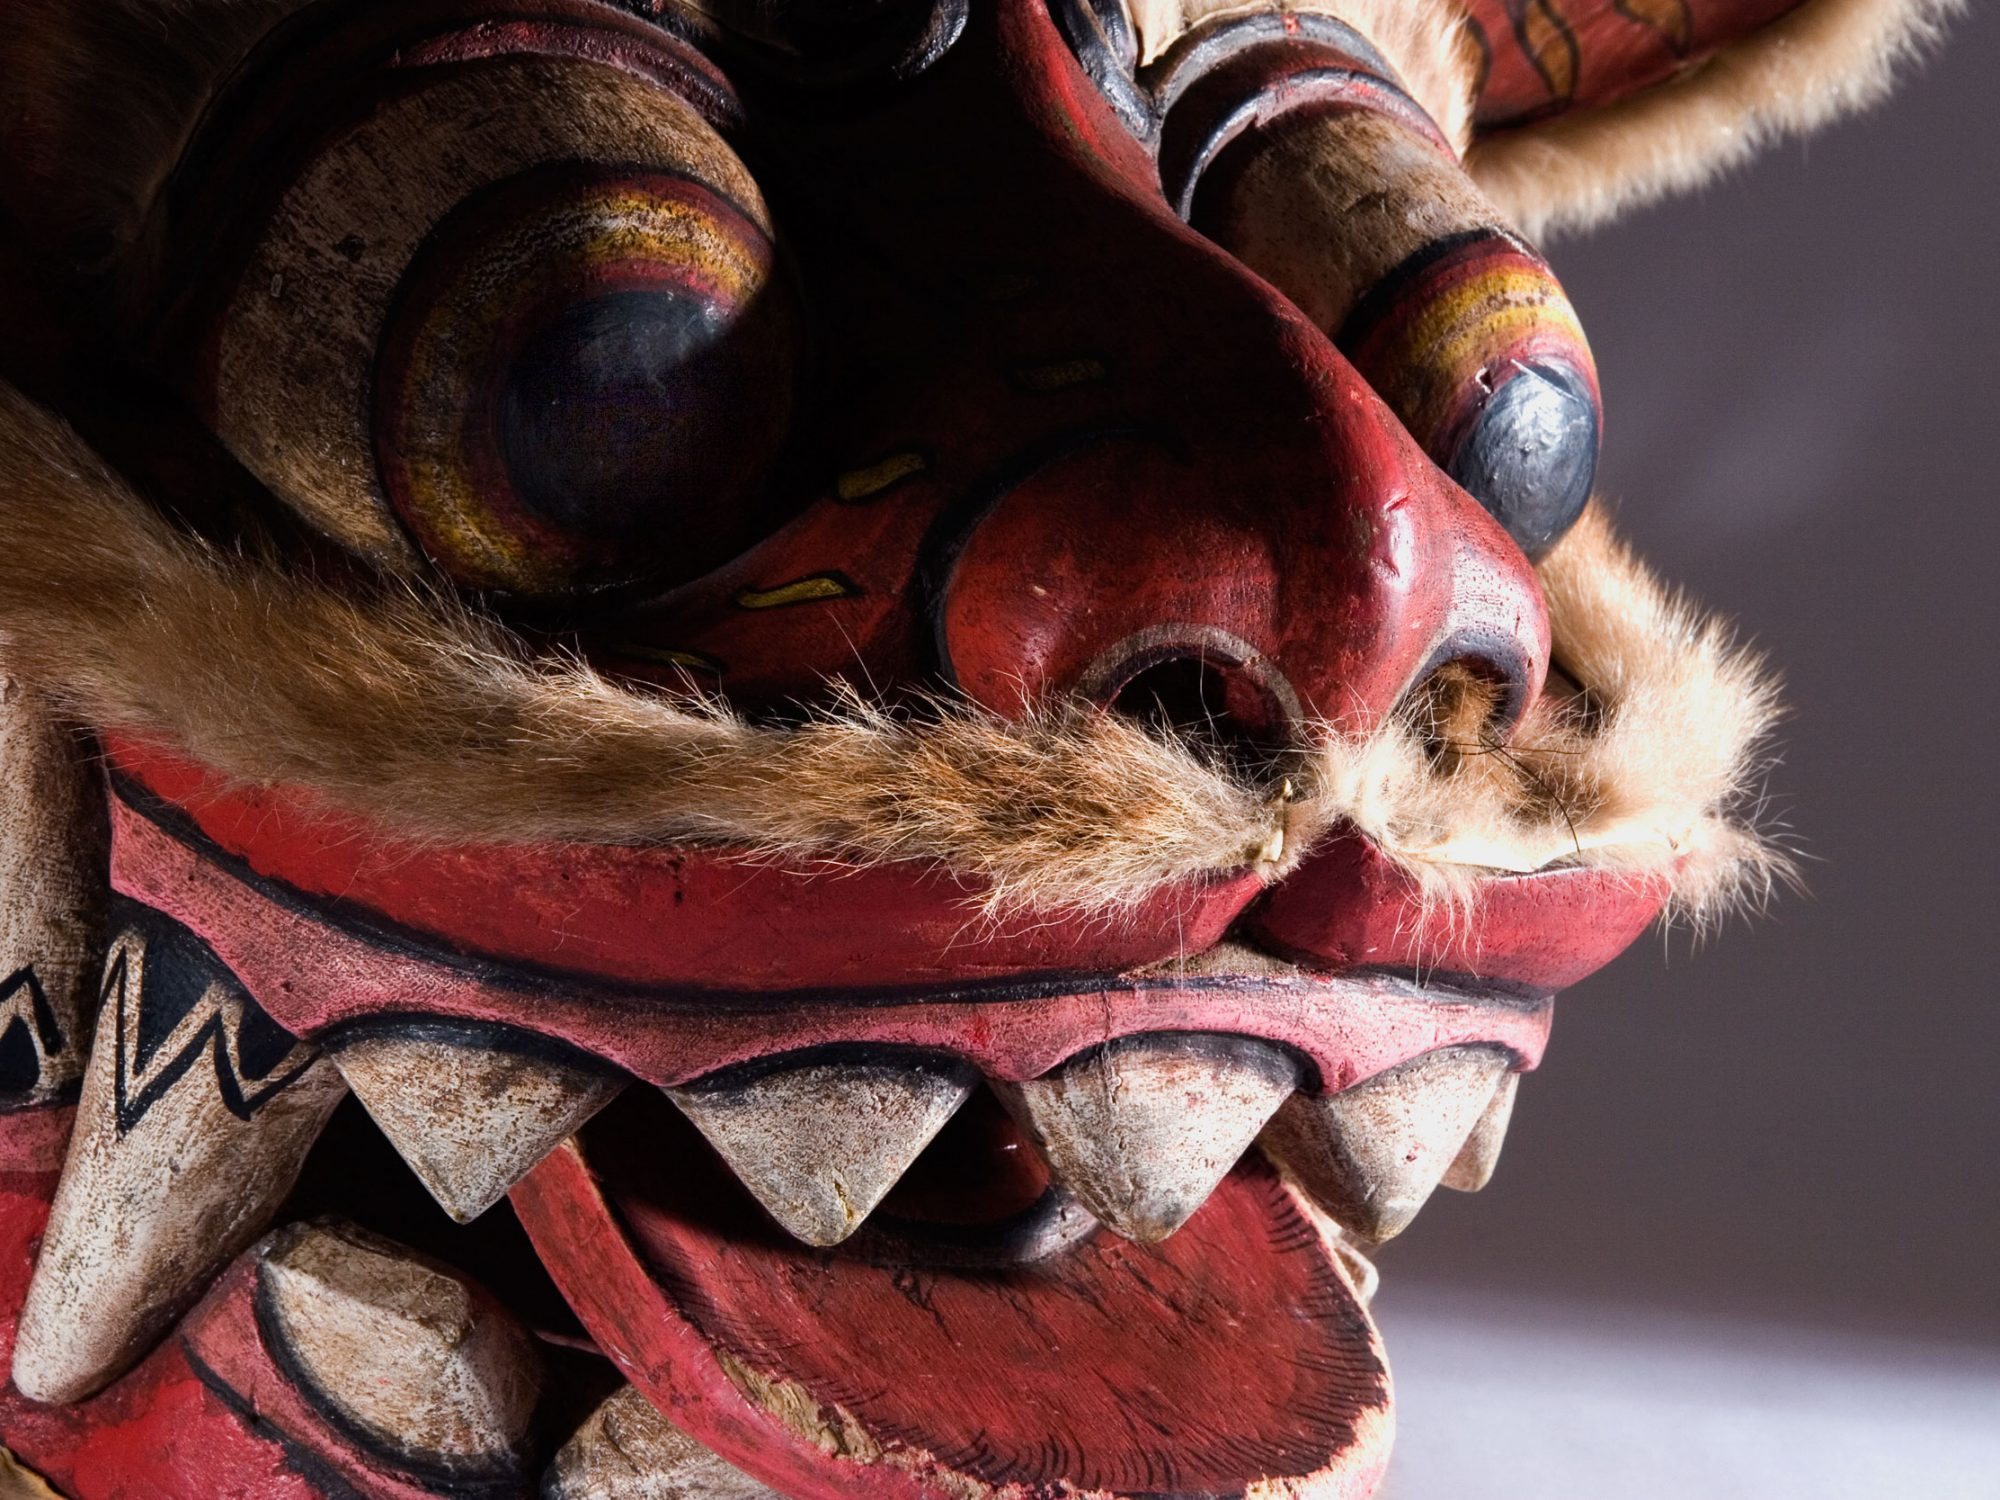 A close up of a Chinese dragon mask face with an open mouth and tongue sticking out